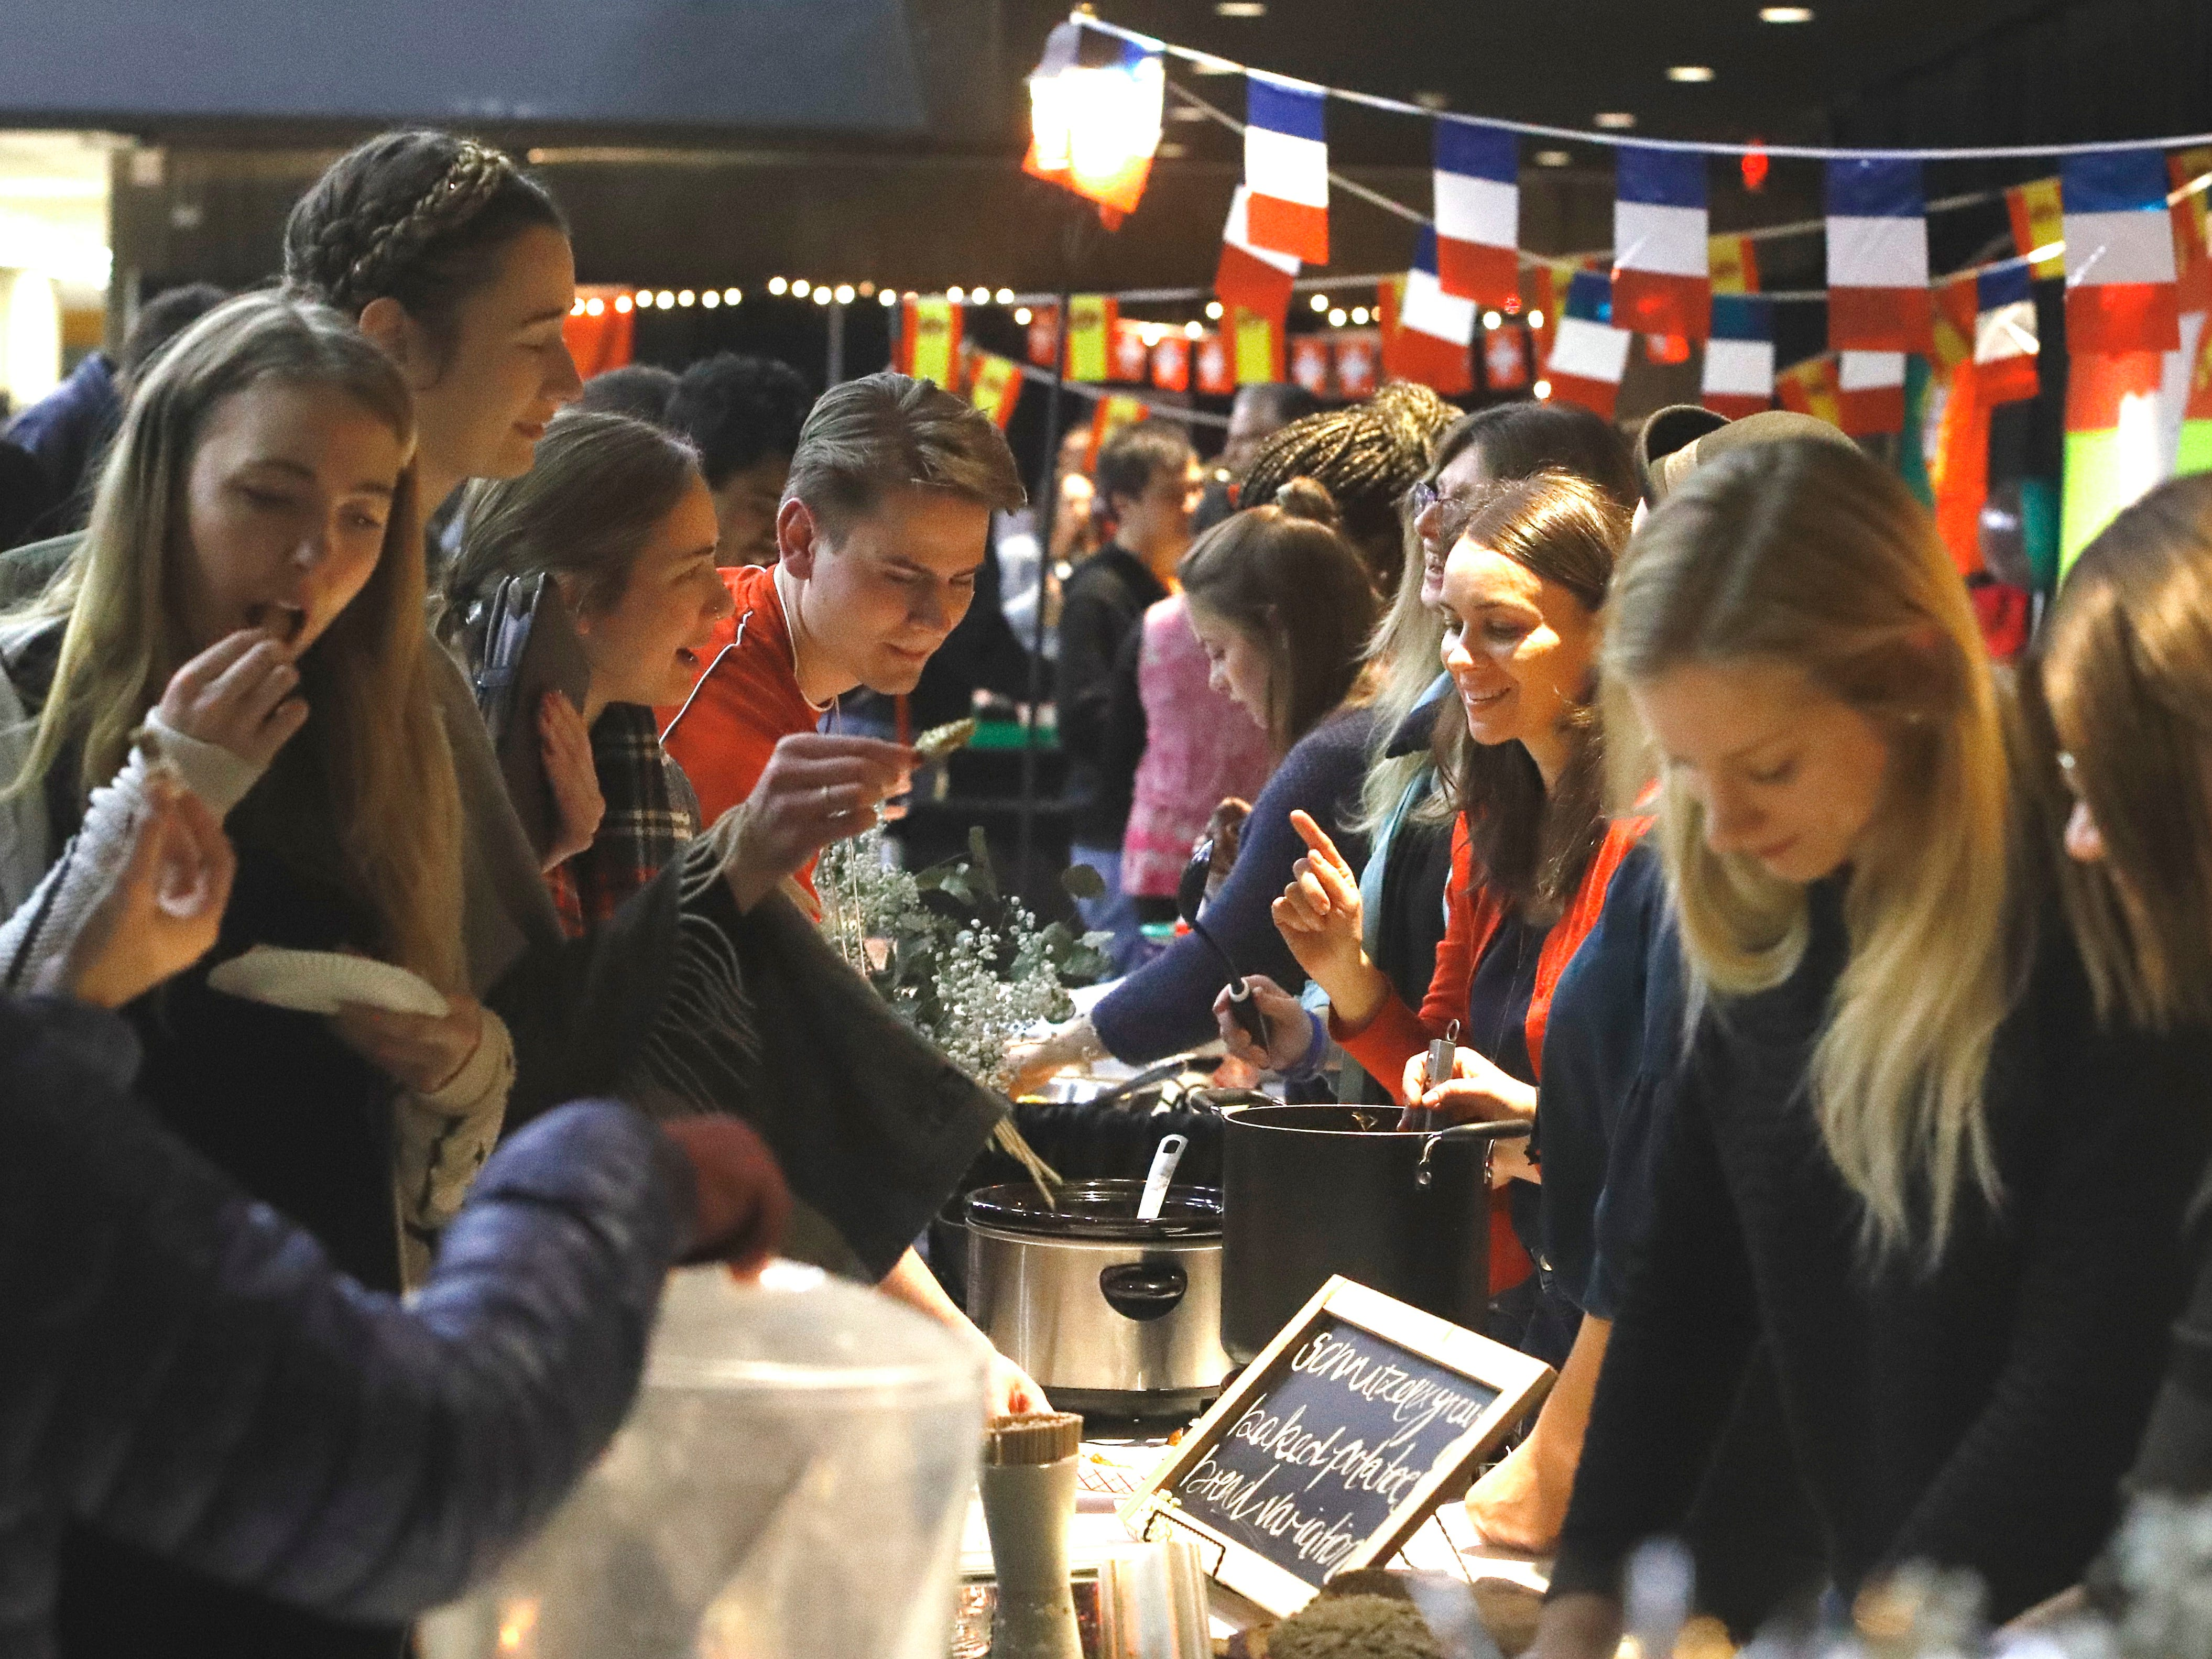 The Redding Civic Auditorium was filled with students from Bethel Church's School of Supernatural Ministry and guests during the 10th annual Festival of Cultures on Feb. 9, 2019.